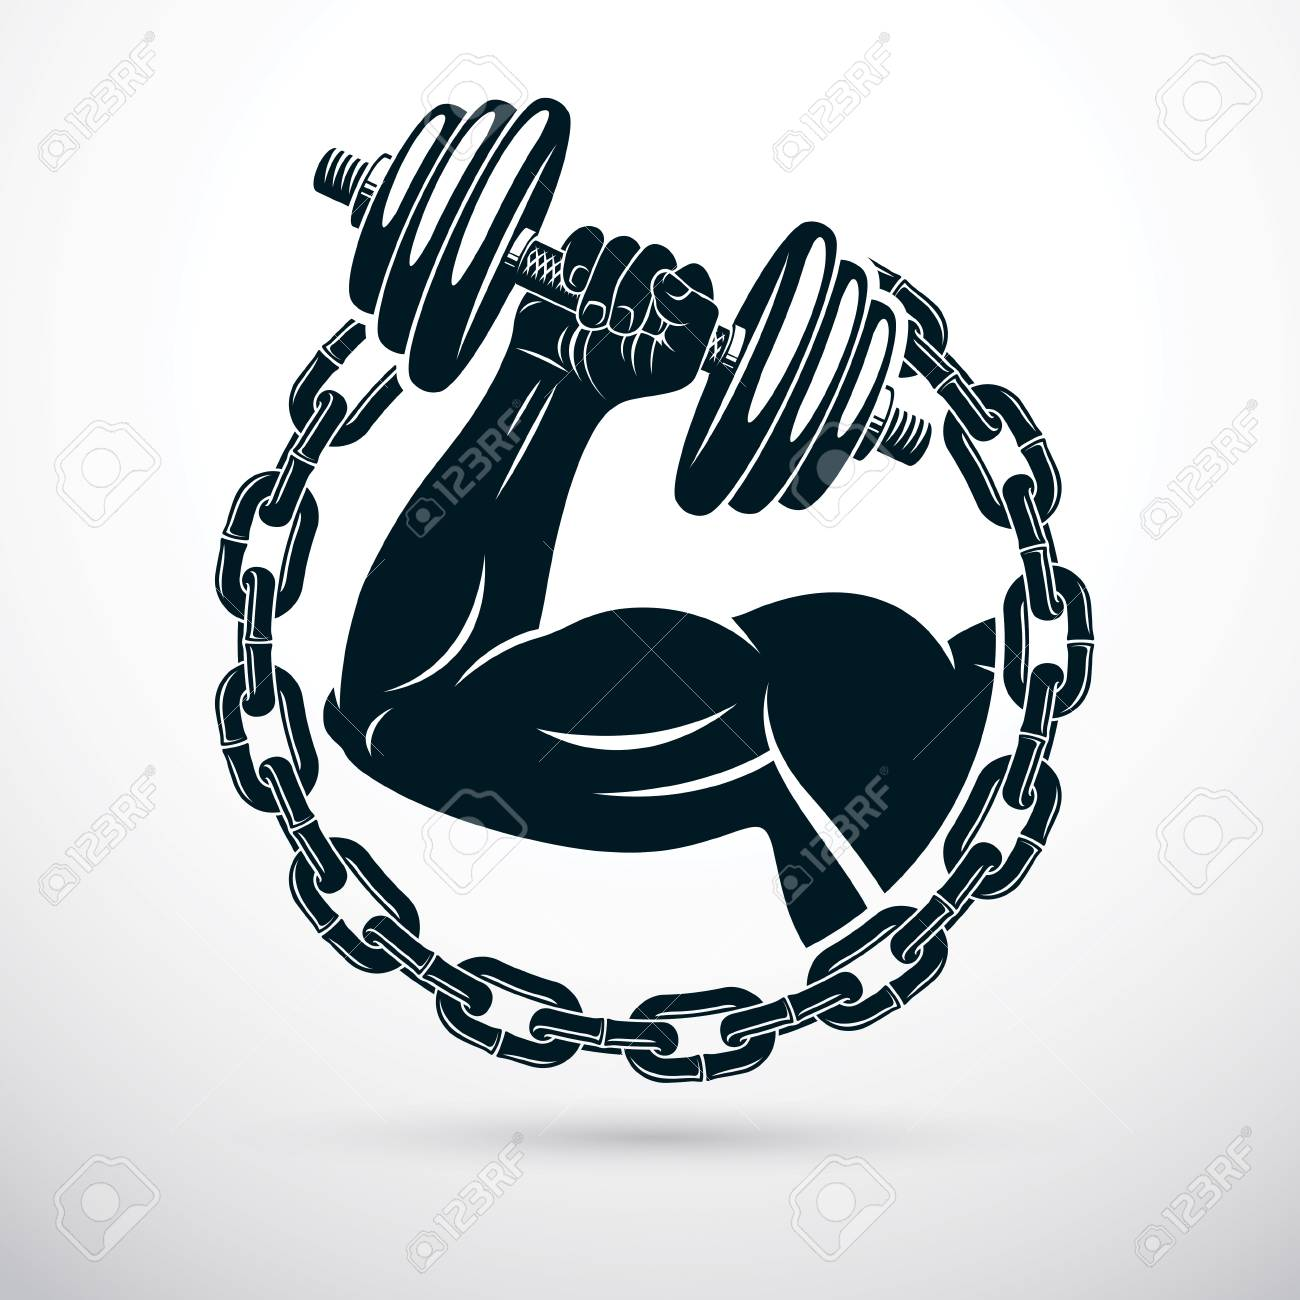 Vector illustration of athletic sportsman biceps arm holding dumbbell and surrounded by iron chain, symbol of strength and healthy lifestyle. Fitness workout. - 124737389